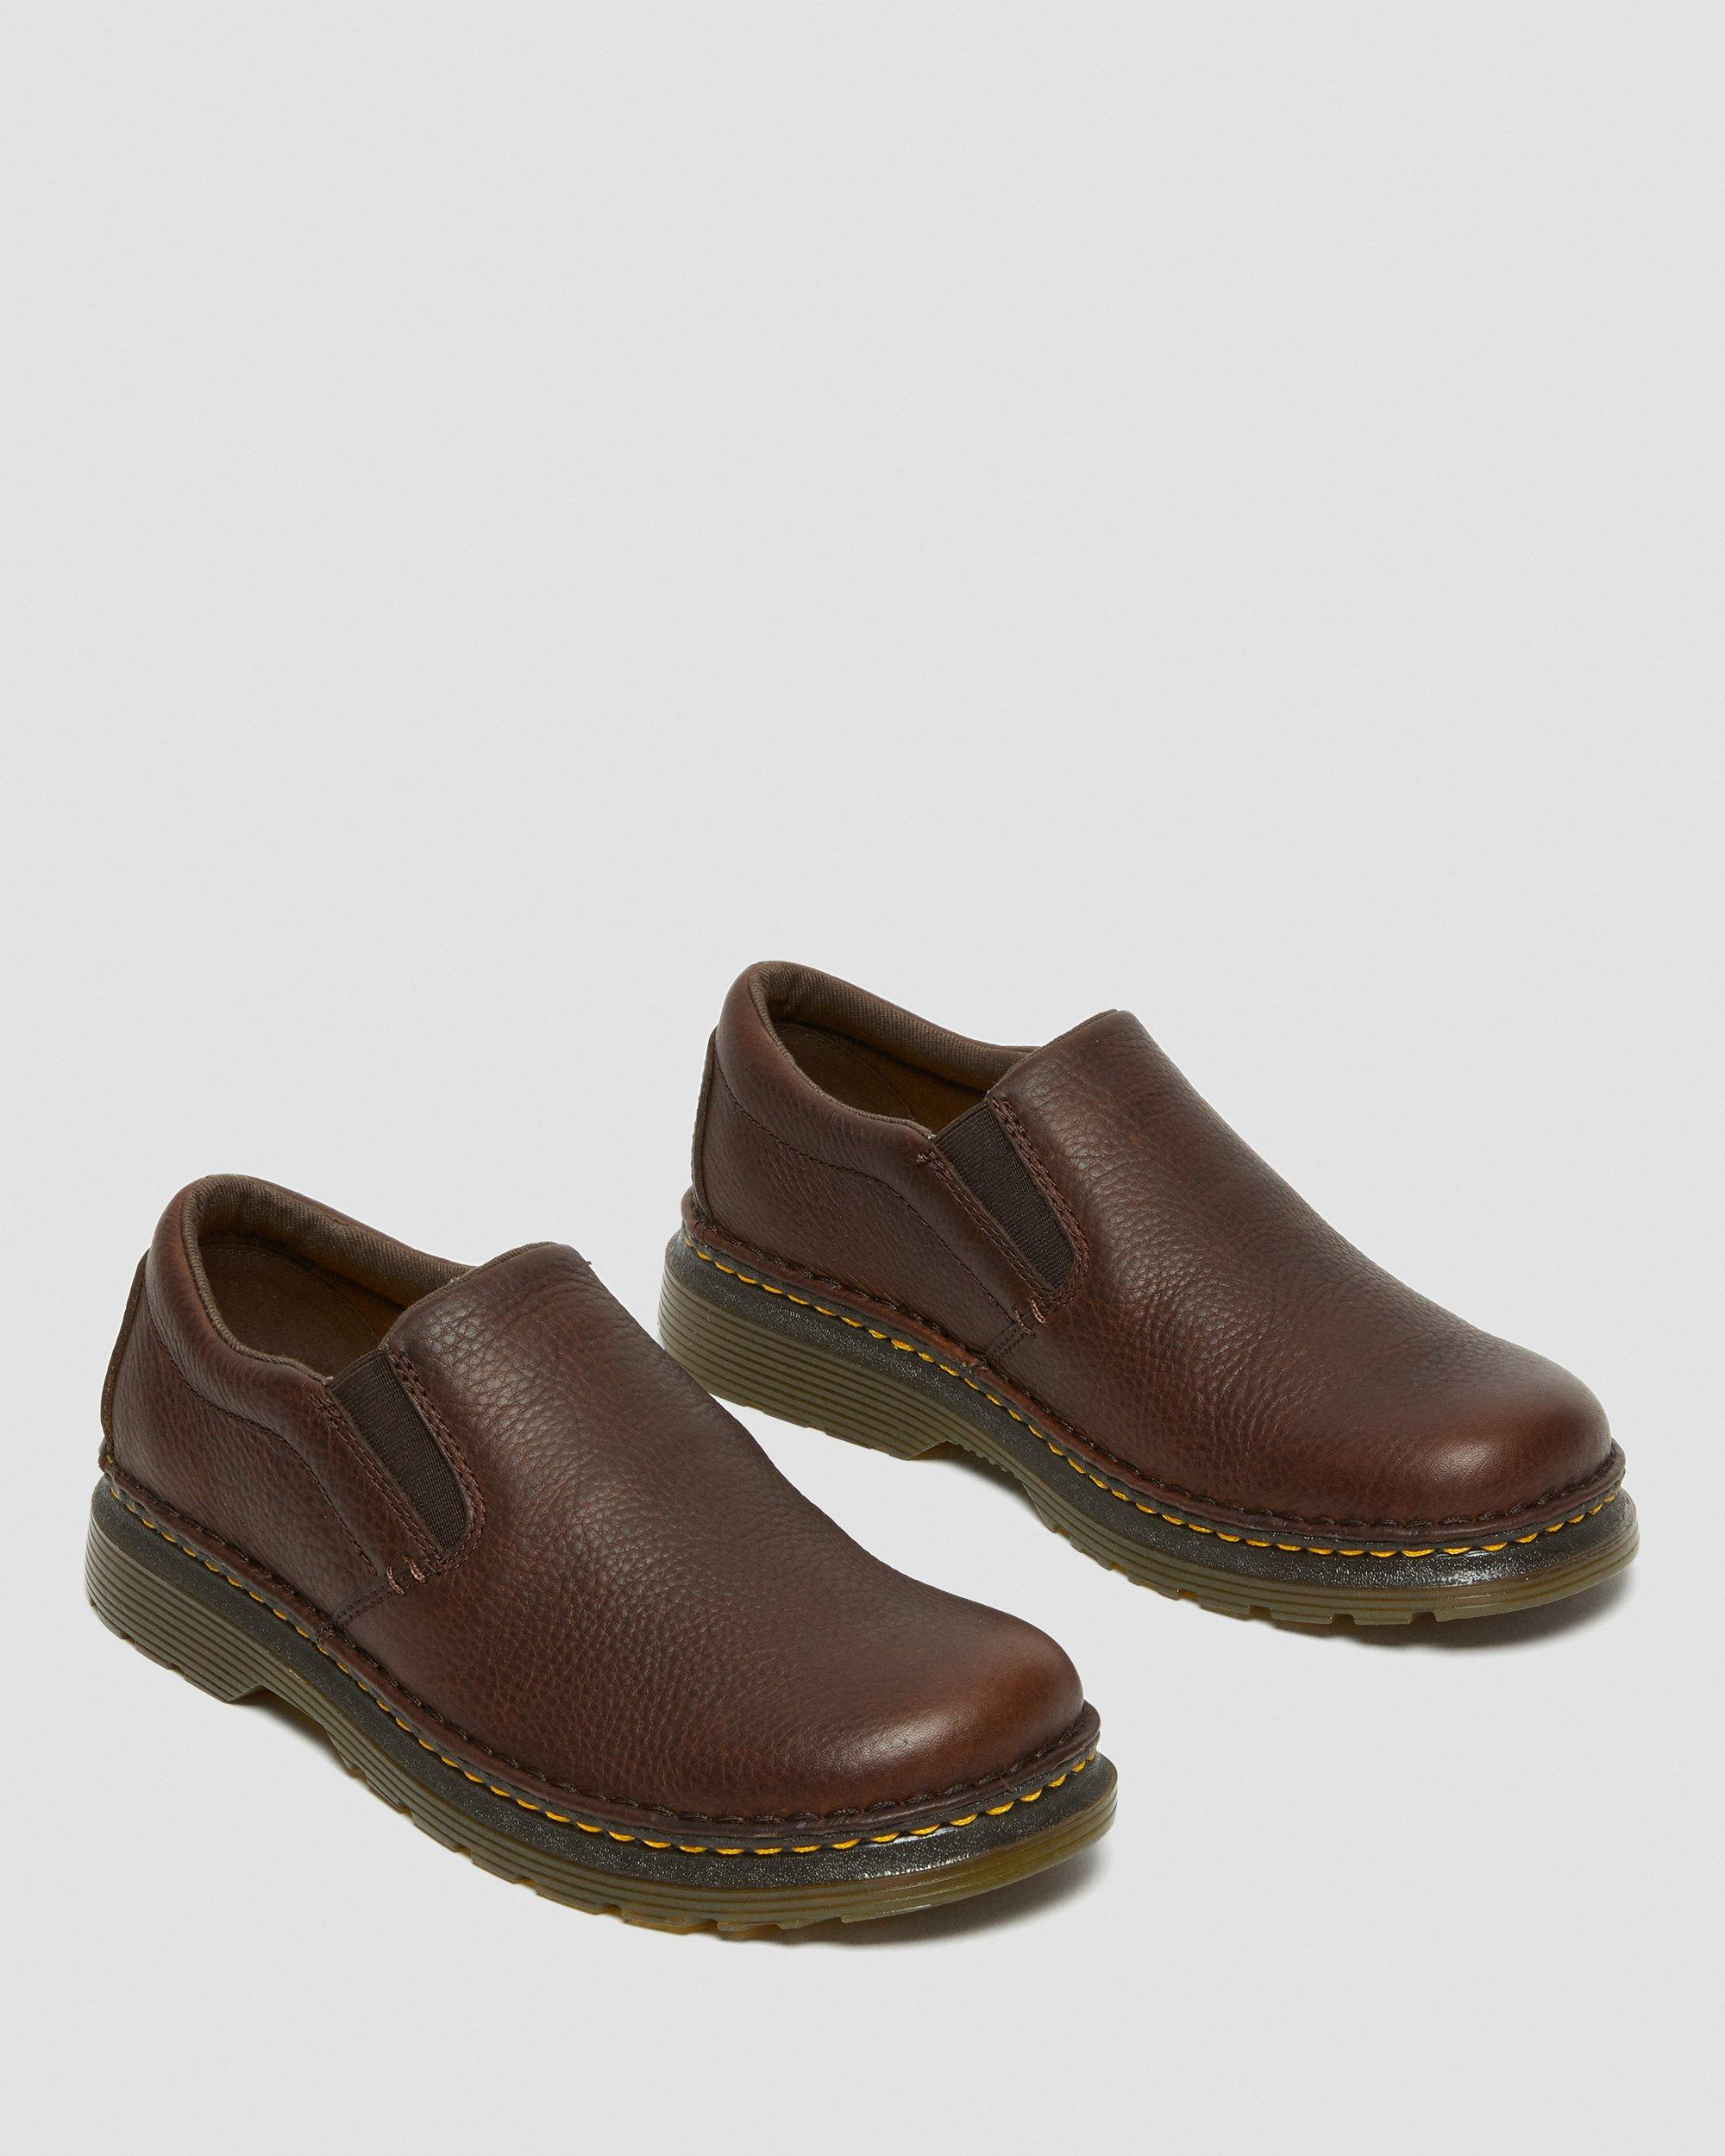 BOYLE MEN'S GRIZZLY LEATHER SLIP ON